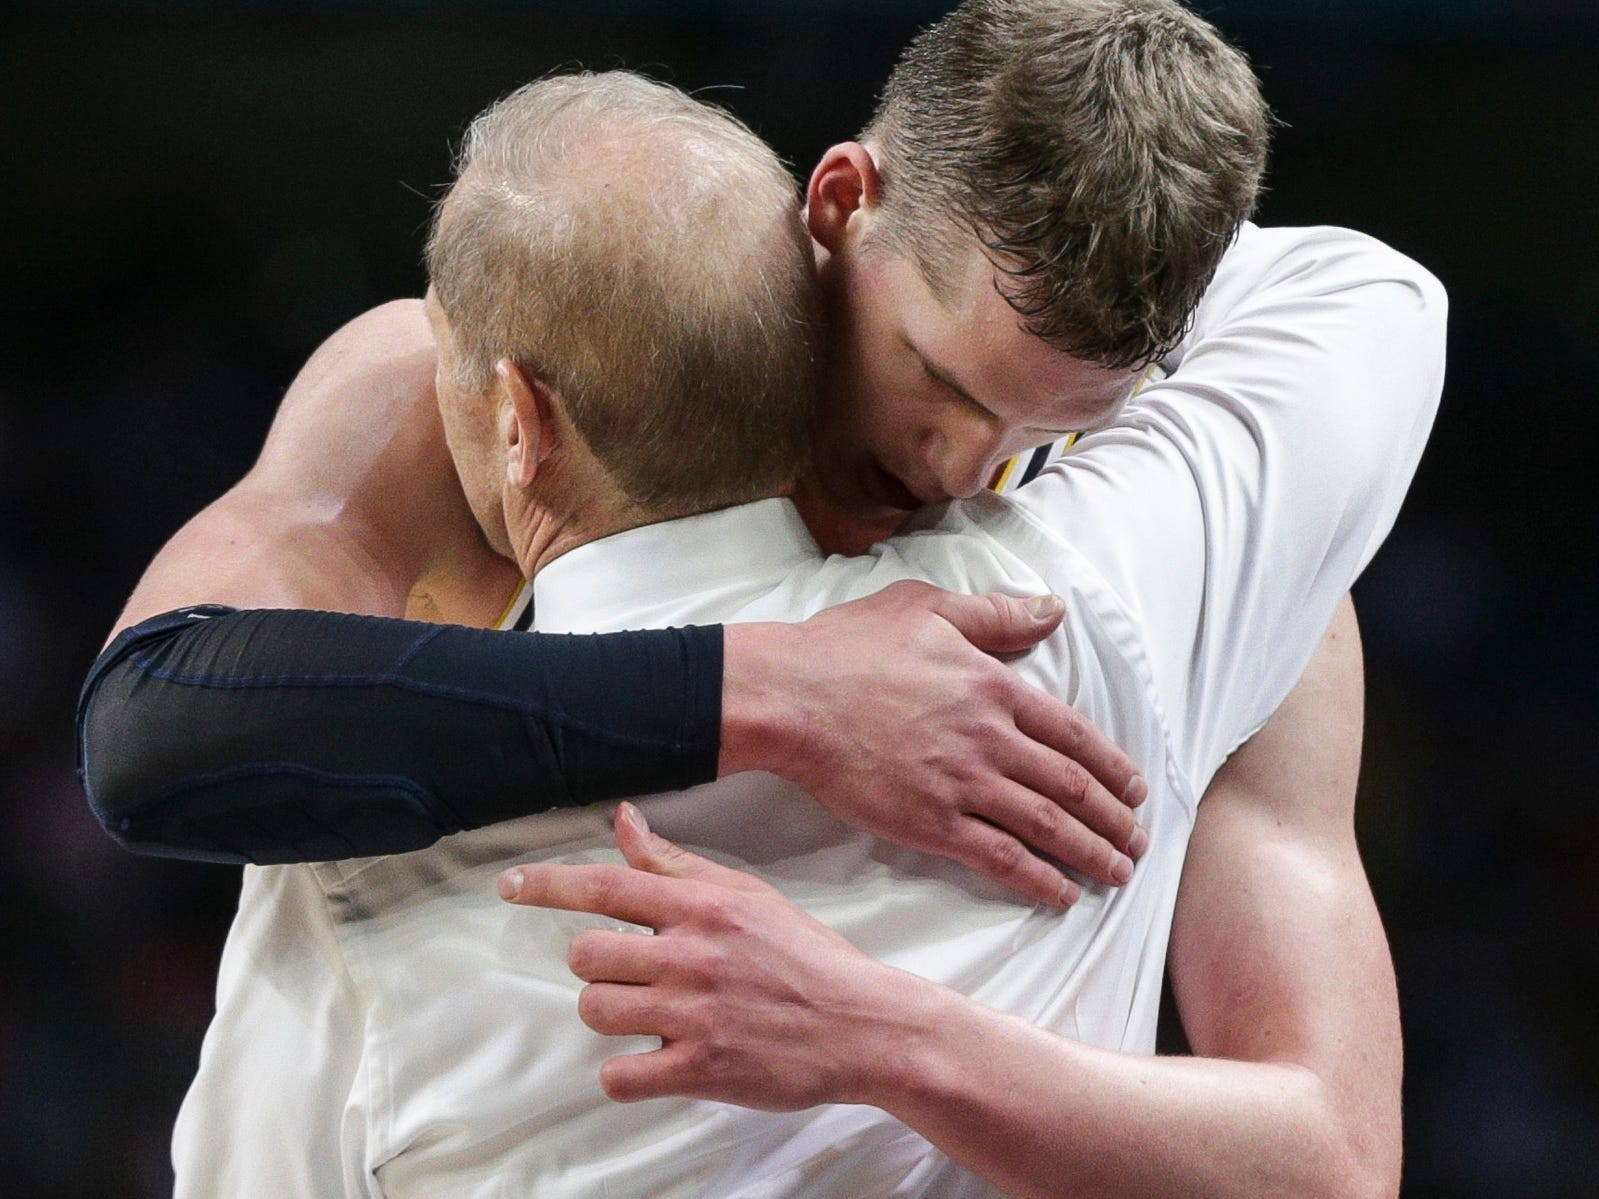 Michigan head coach John Beilein hugs Michigan forward Moritz Wagner (13) as he leaves the floor during the NCAA division 1 men's basketball national championship game between Michigan and Villanova on Monday, April 2, 2018, at the Alamodome in San Antonio.